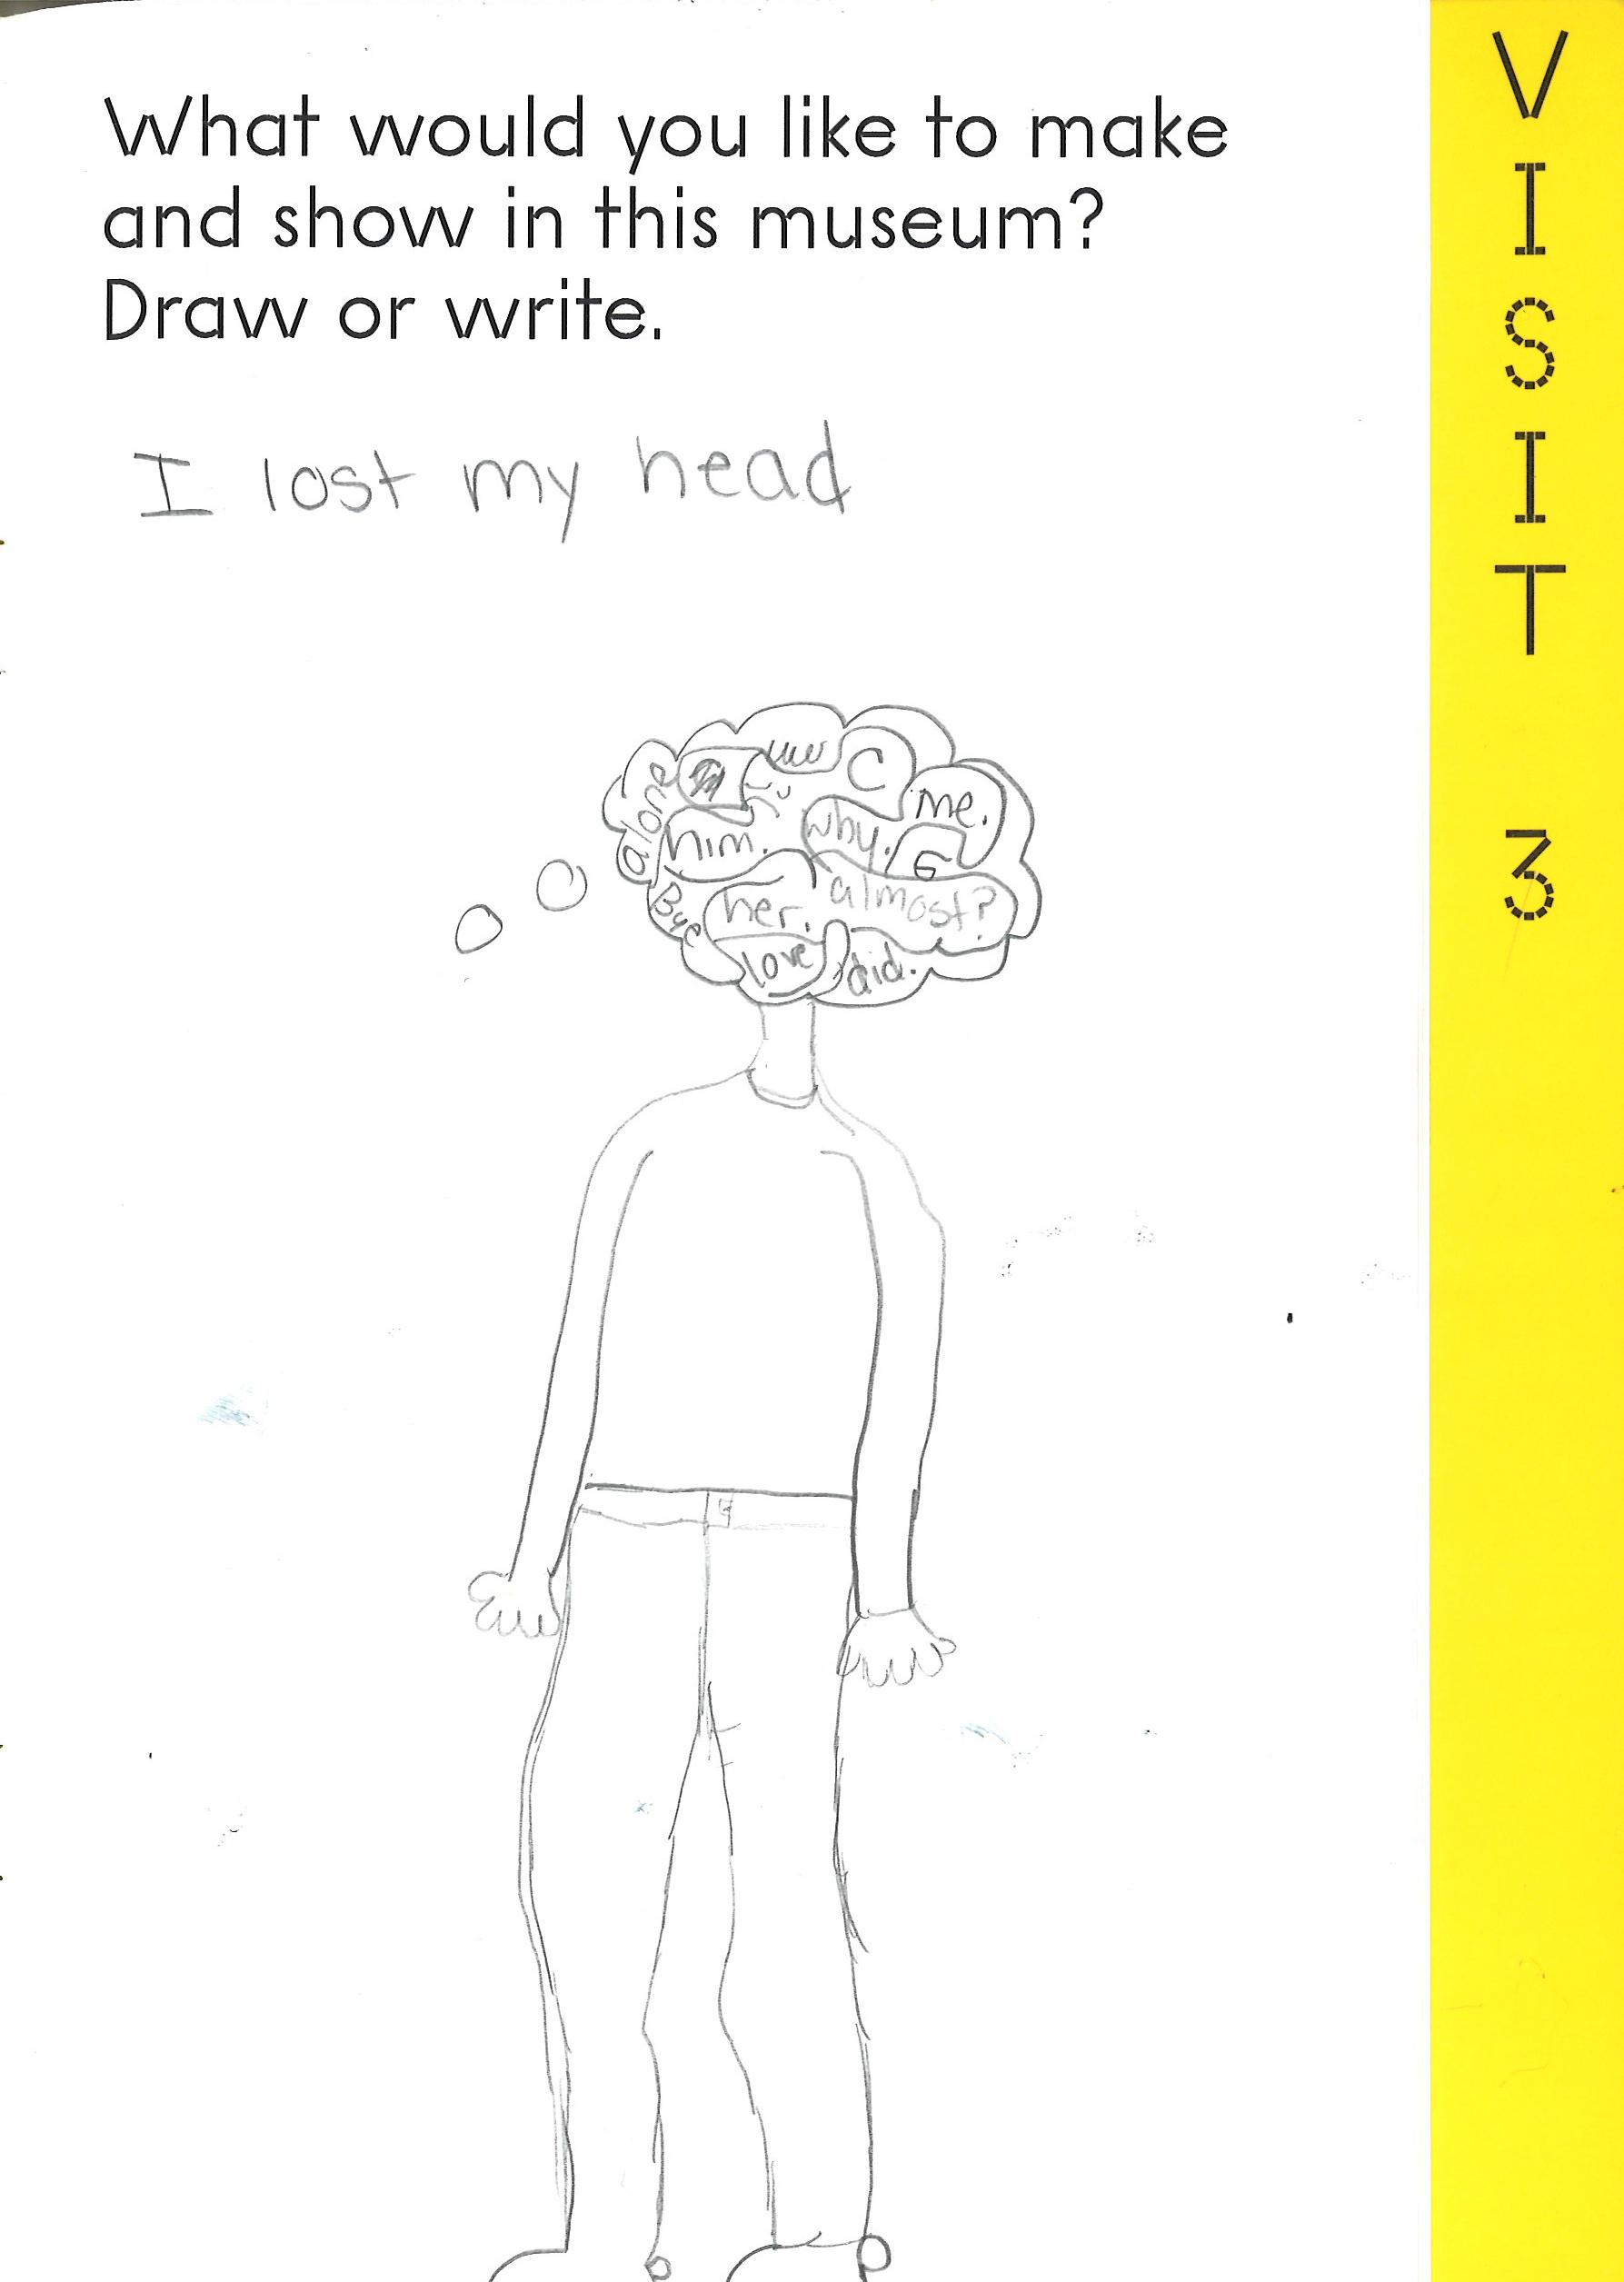 """Scanned page from a children's activity book shows a pencil drawing of a person with words in his/her head, in response to the prompt: """"What would you like to make and show in this museum Draw or write."""""""